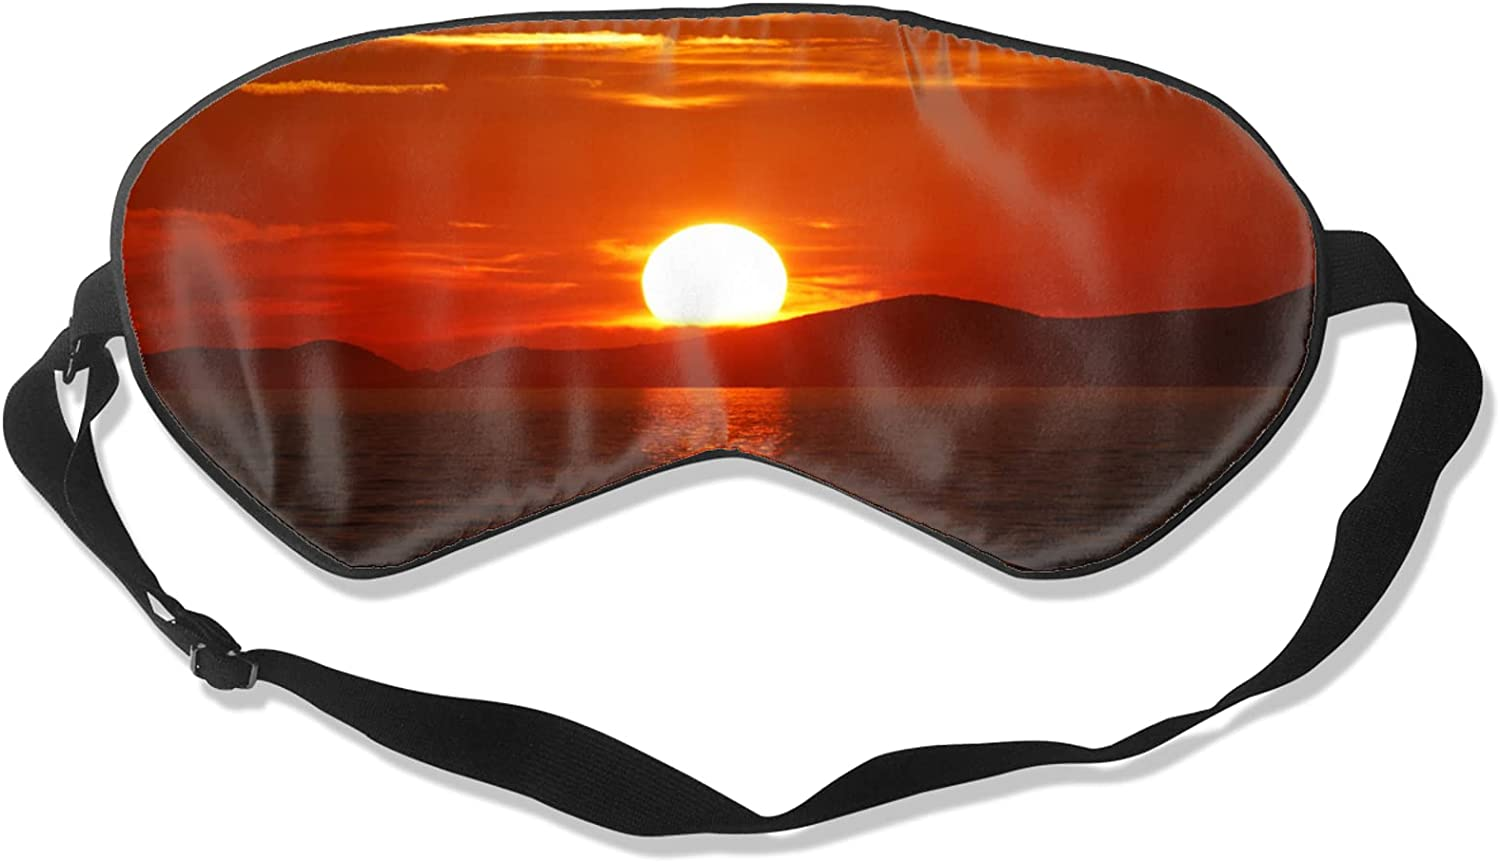 Orange Sun and Moon Blindfold Non-Allergenic Skin-Friendly Max 79% OFF Breat Ranking TOP18